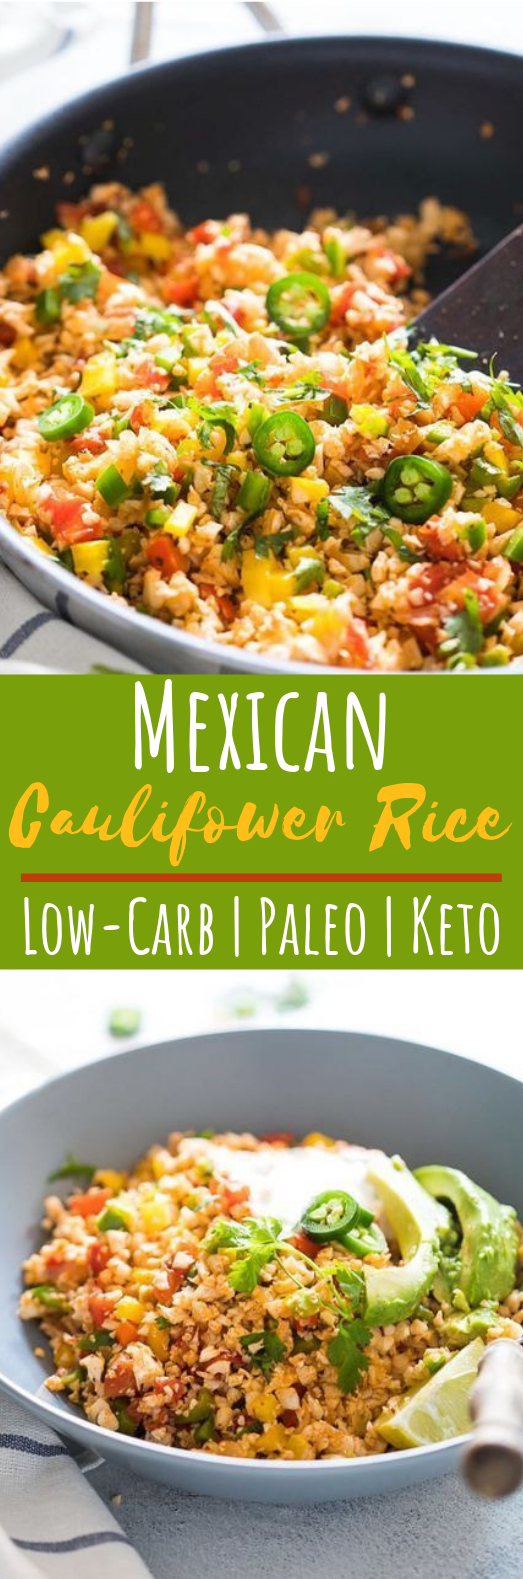 Low Carb Mexican Cauliflower Rice #healthy #keto